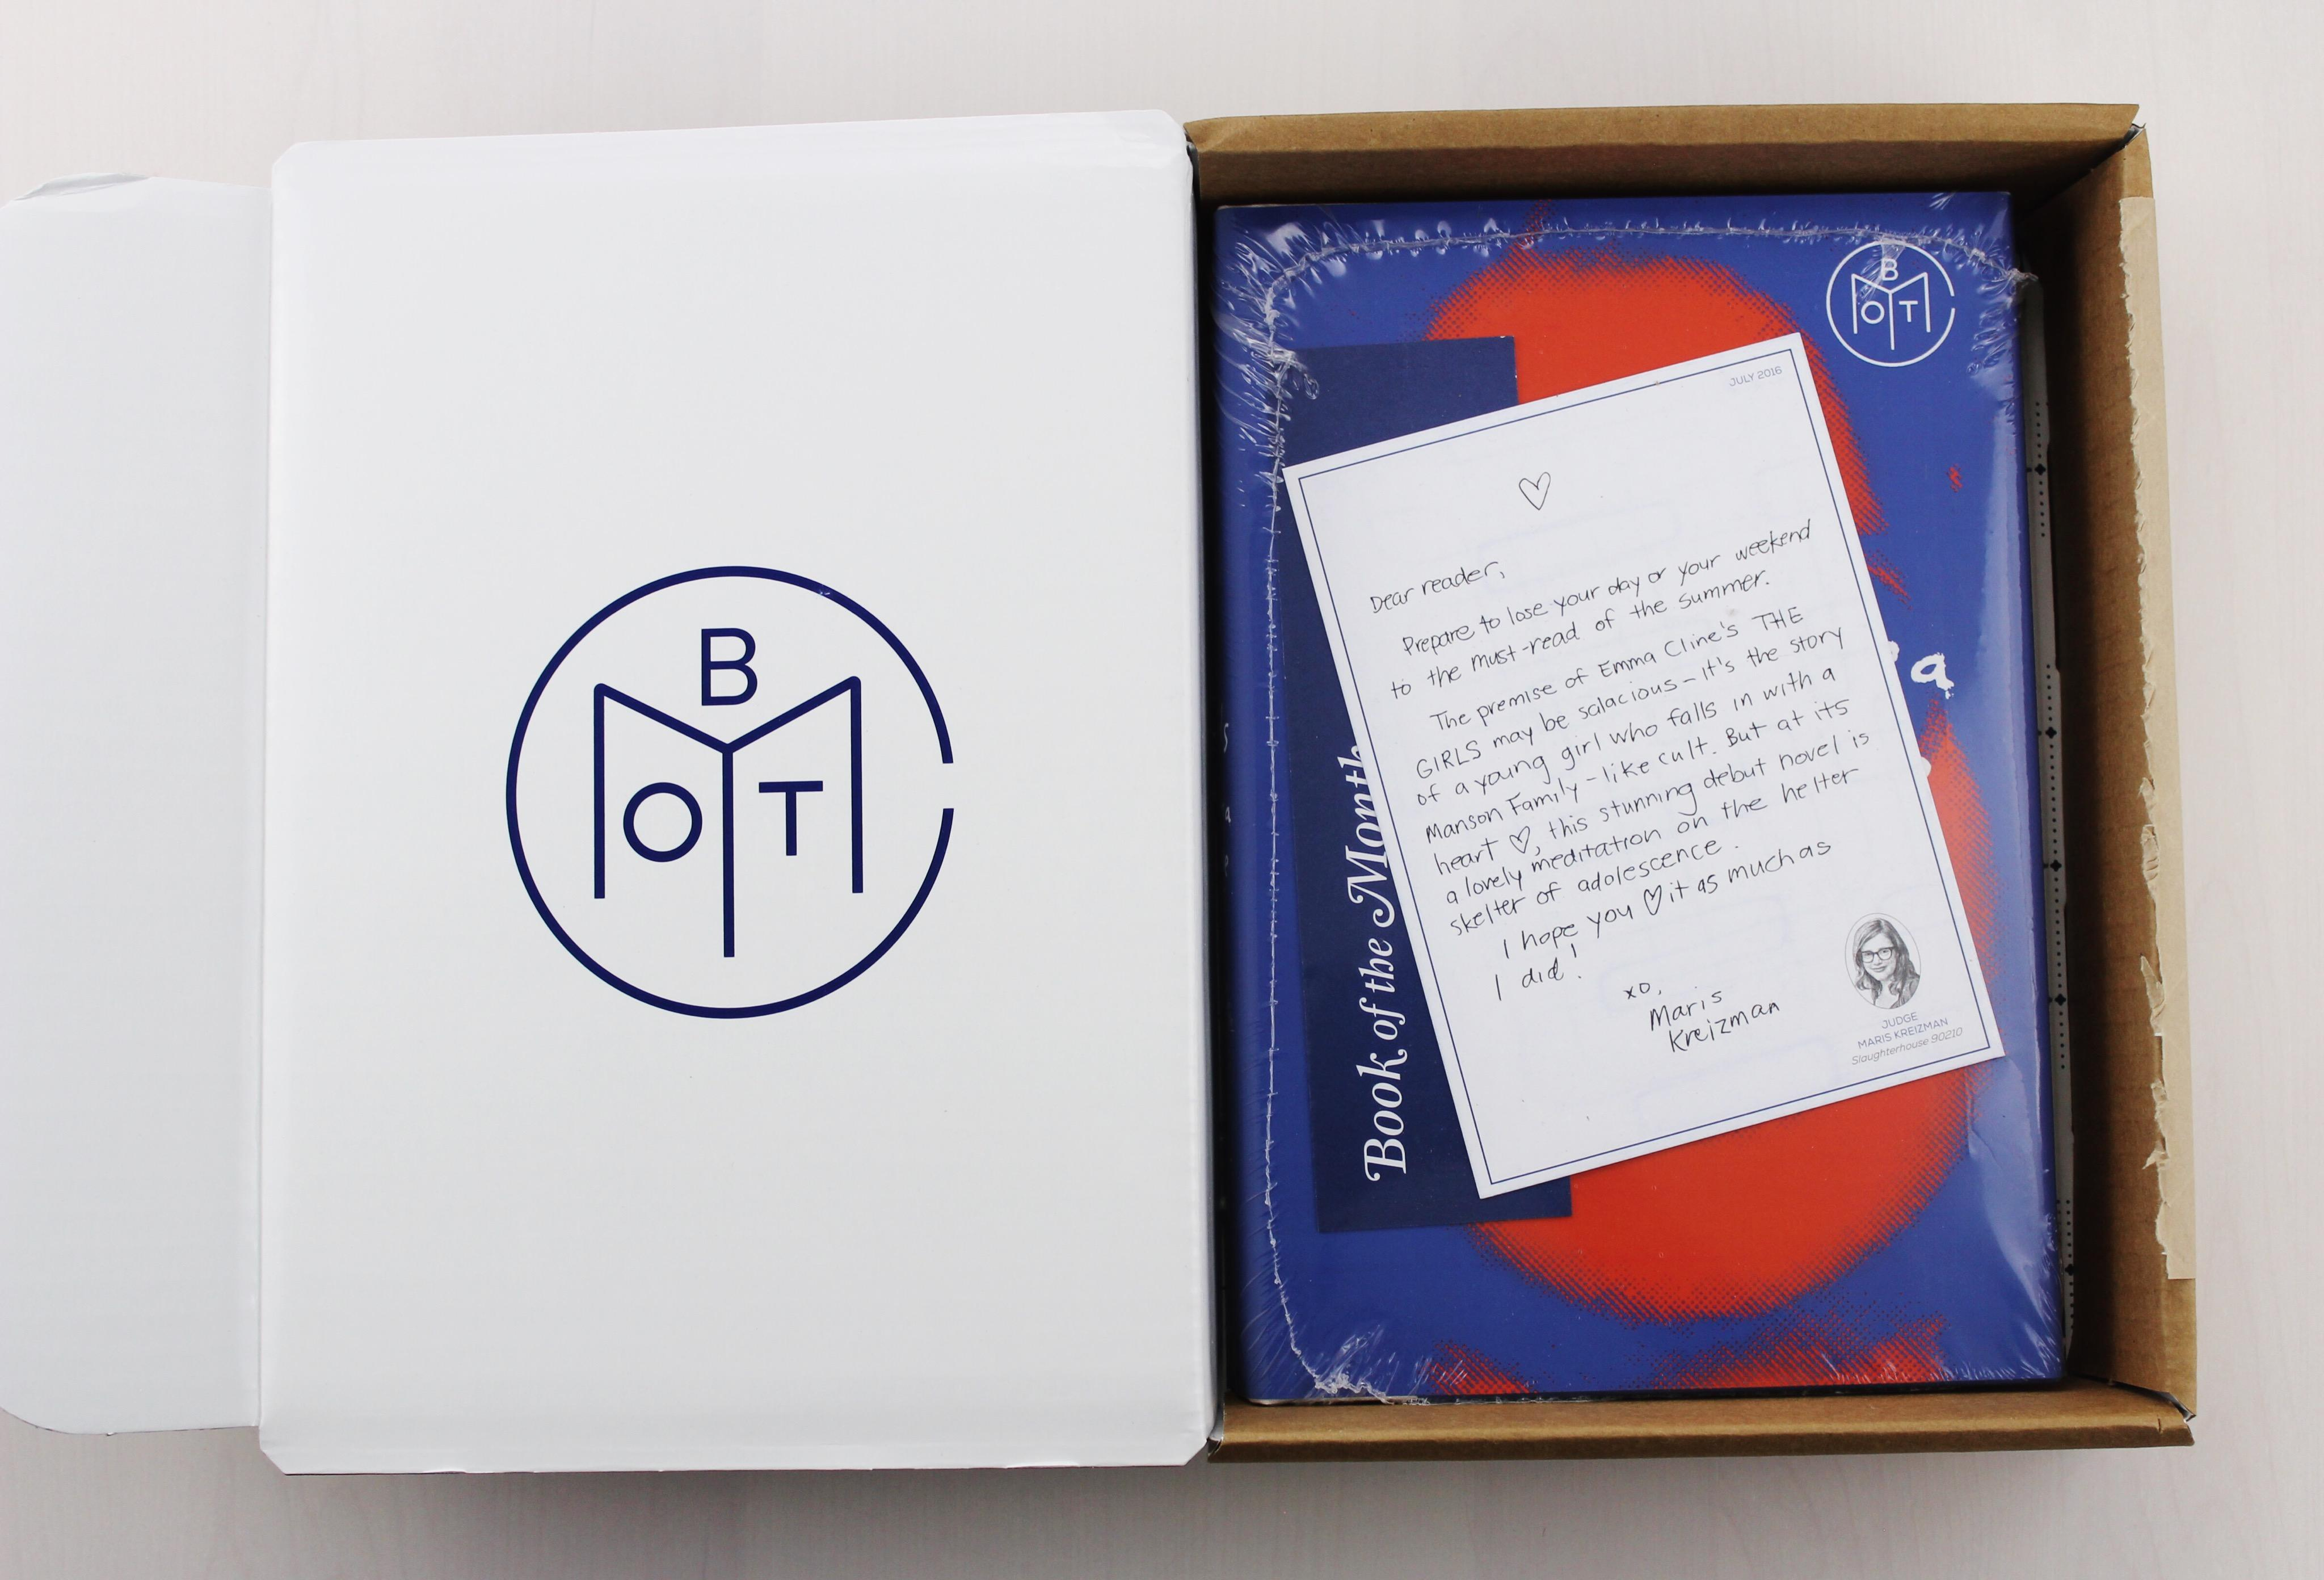 book in cellophane inside of a white box with a hand written letter atop the book